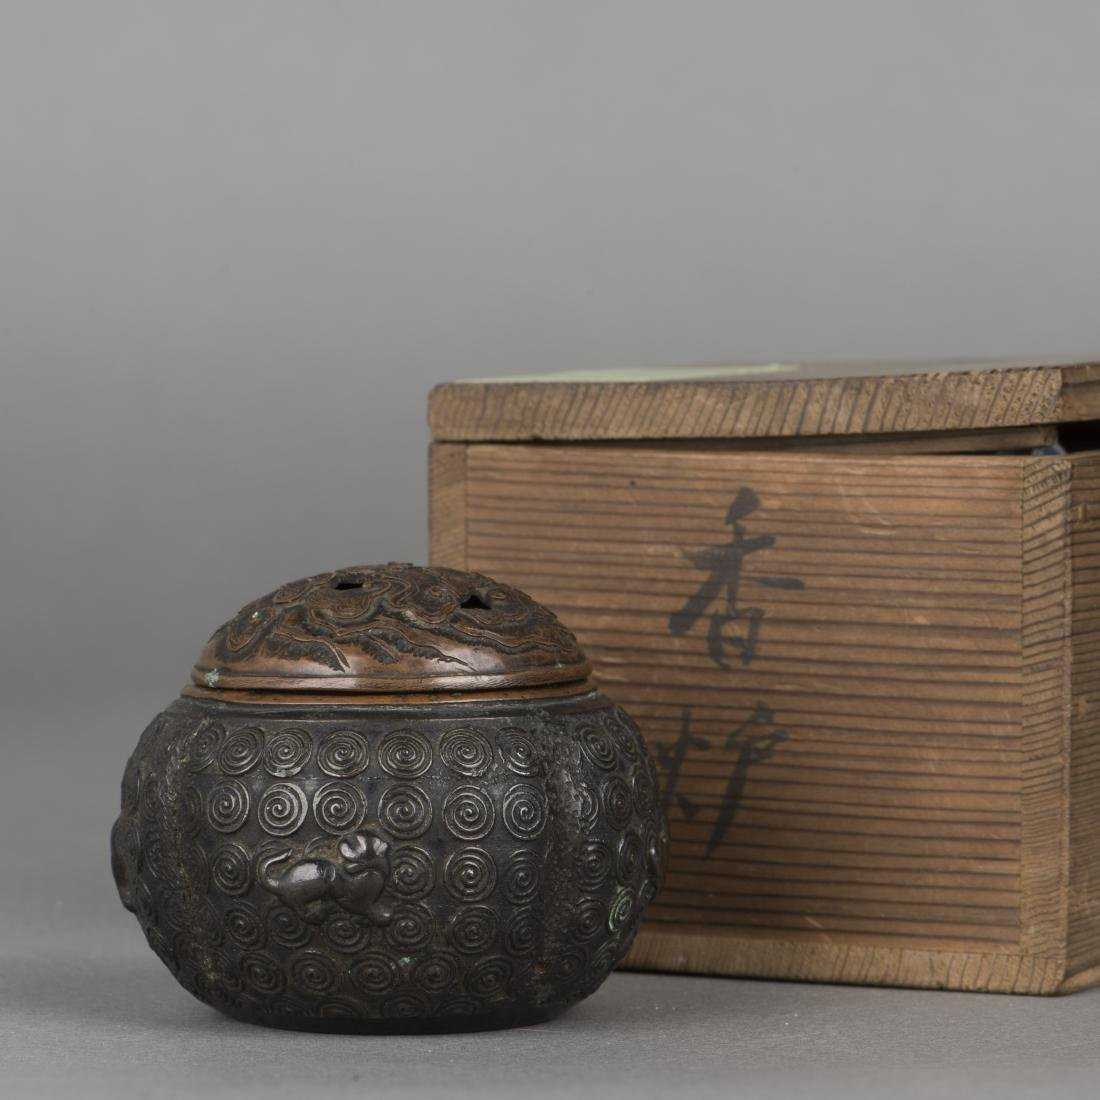 A BRONZE CENSER WITH COVER, 19TH CENTURY